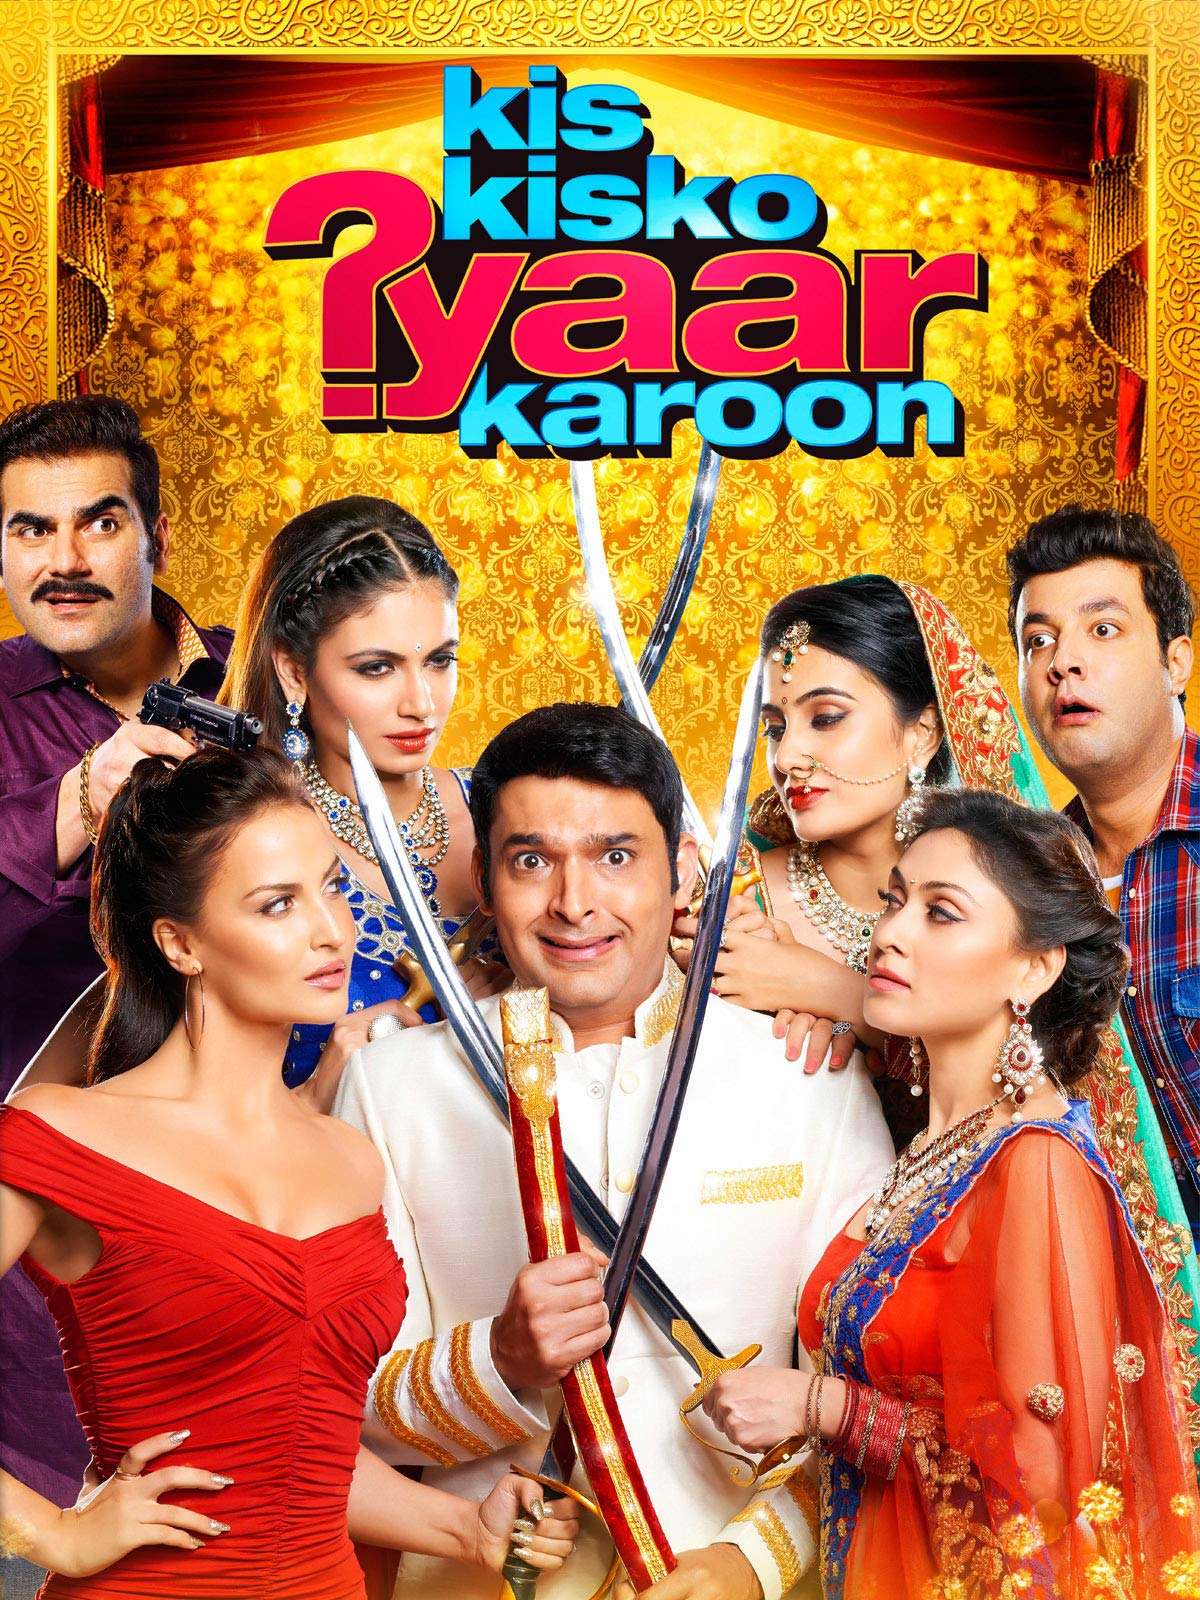 Kis Kisko Pyaar Karoon (2015) Hindi 720p WEB-DL 1.1GB ESubs Free Download